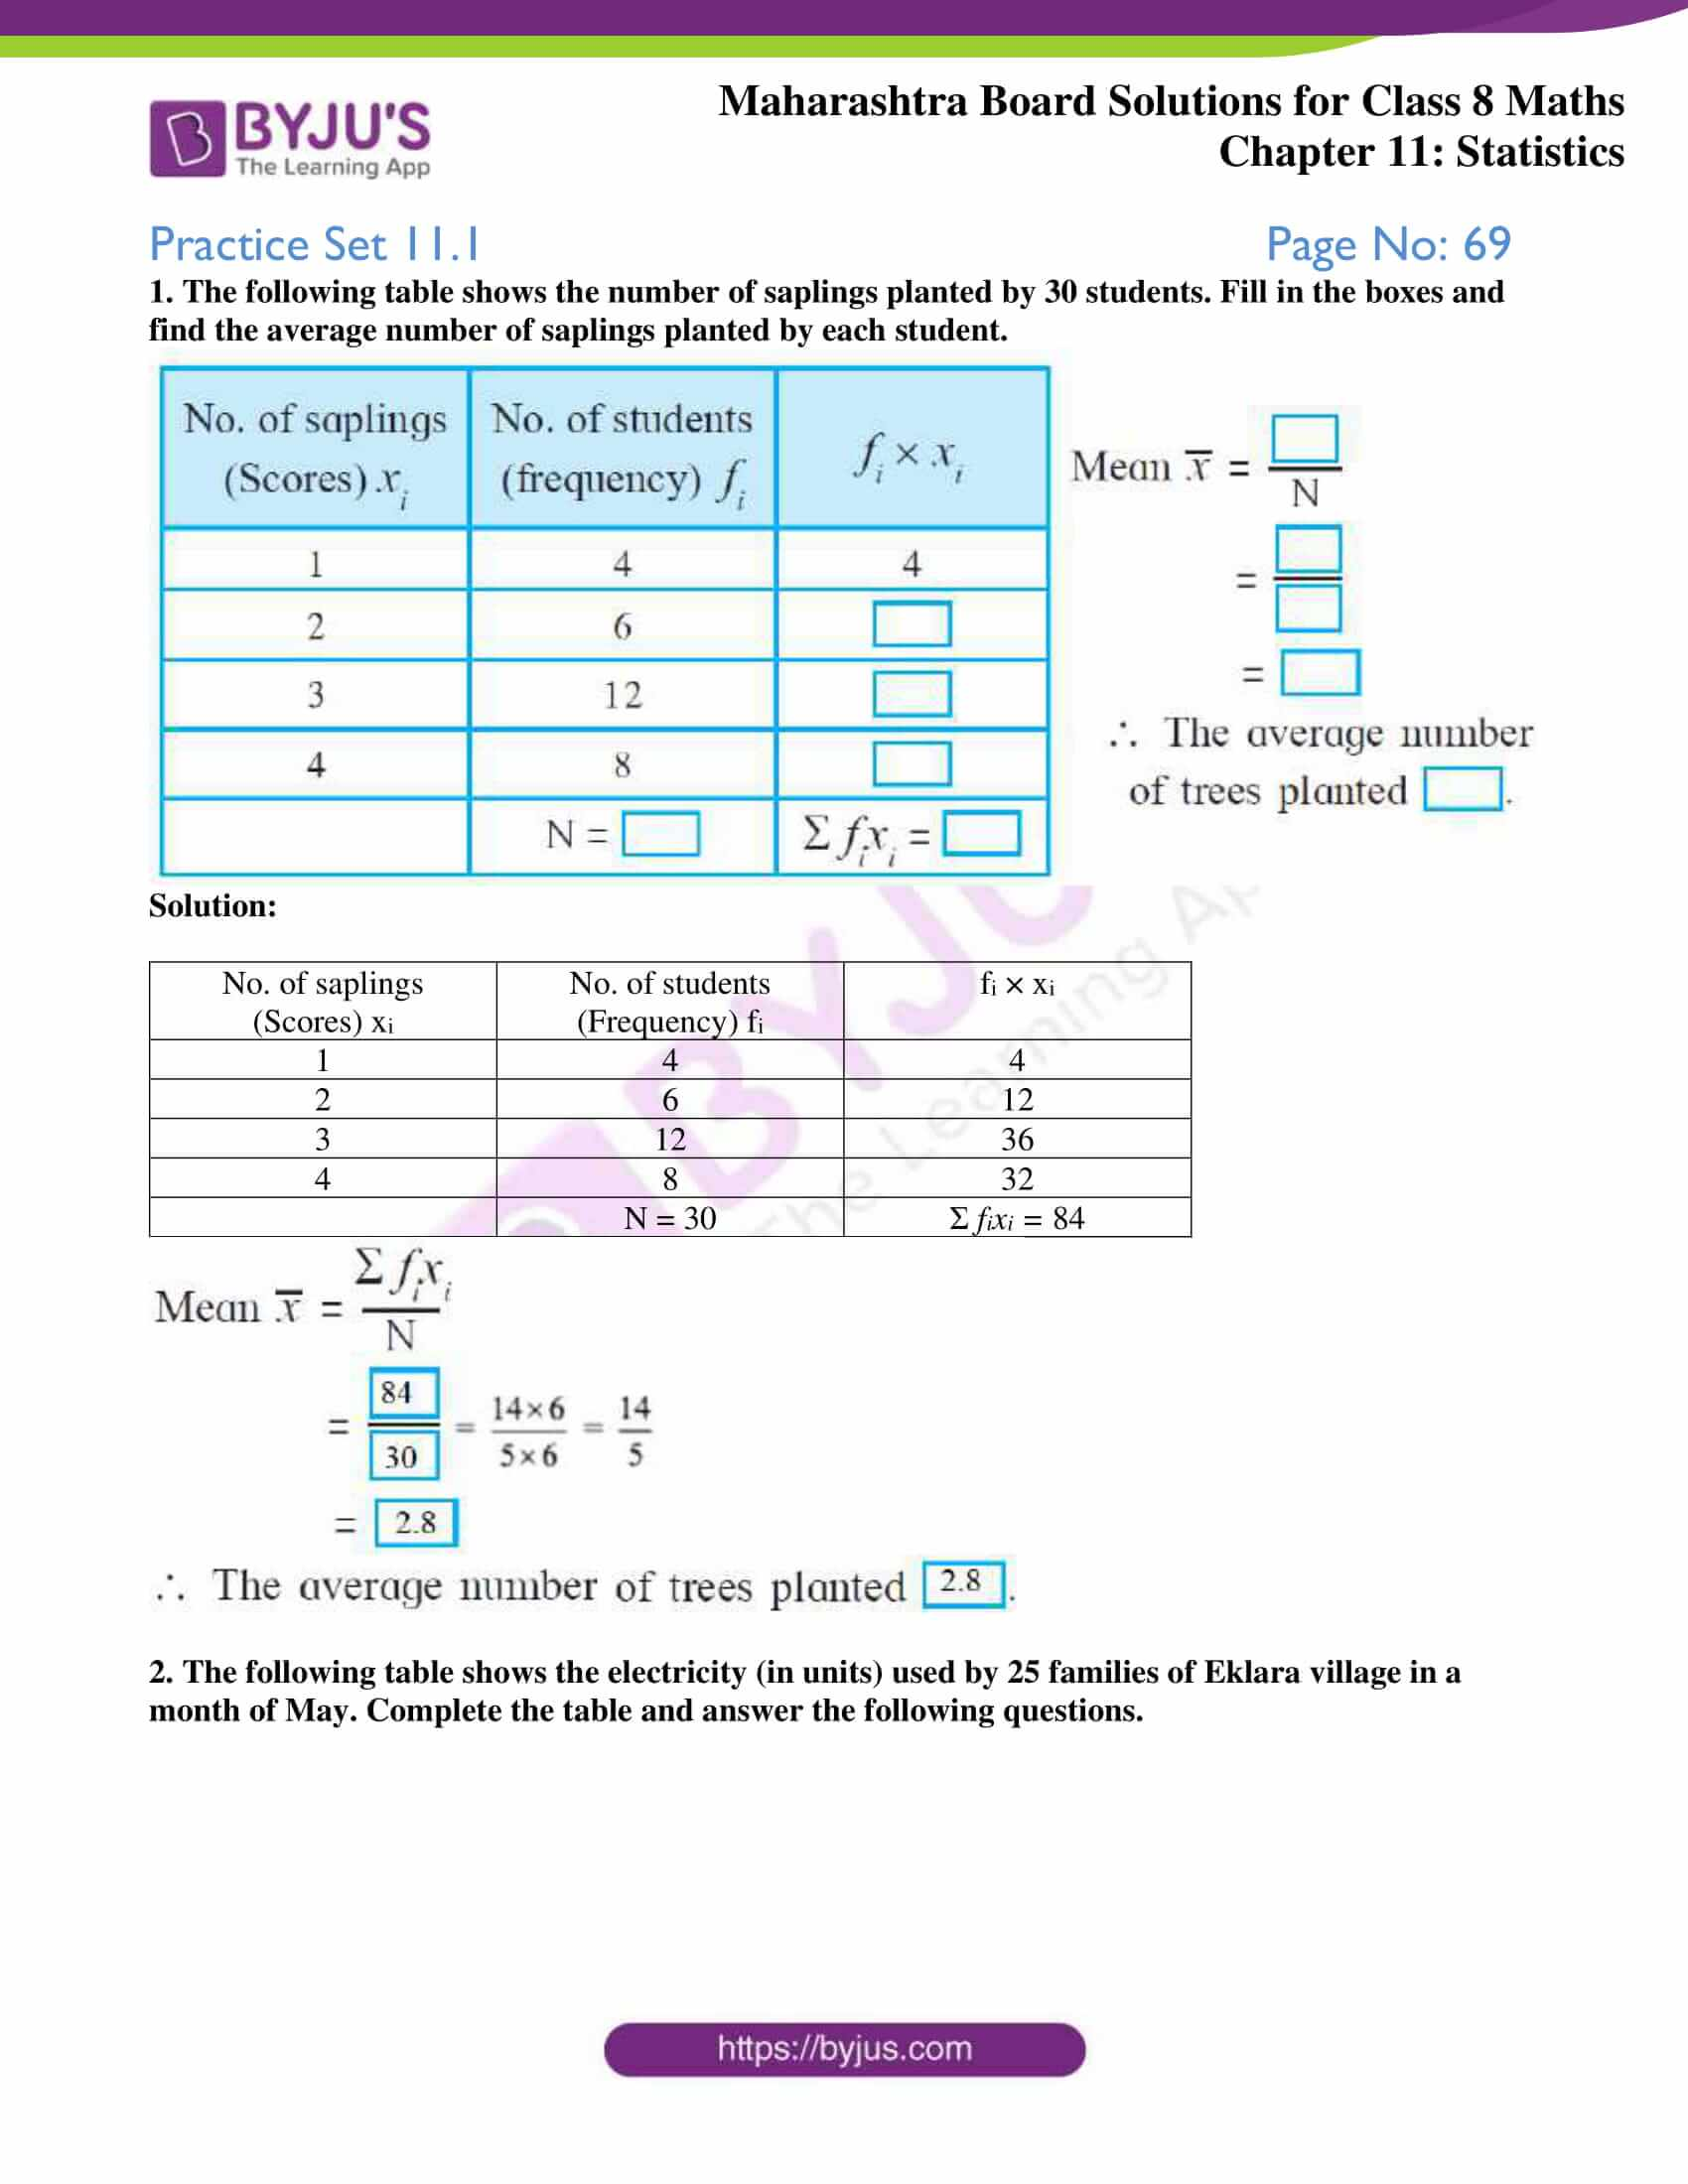 msbshse solutions for class 8 maths chapter 11 01